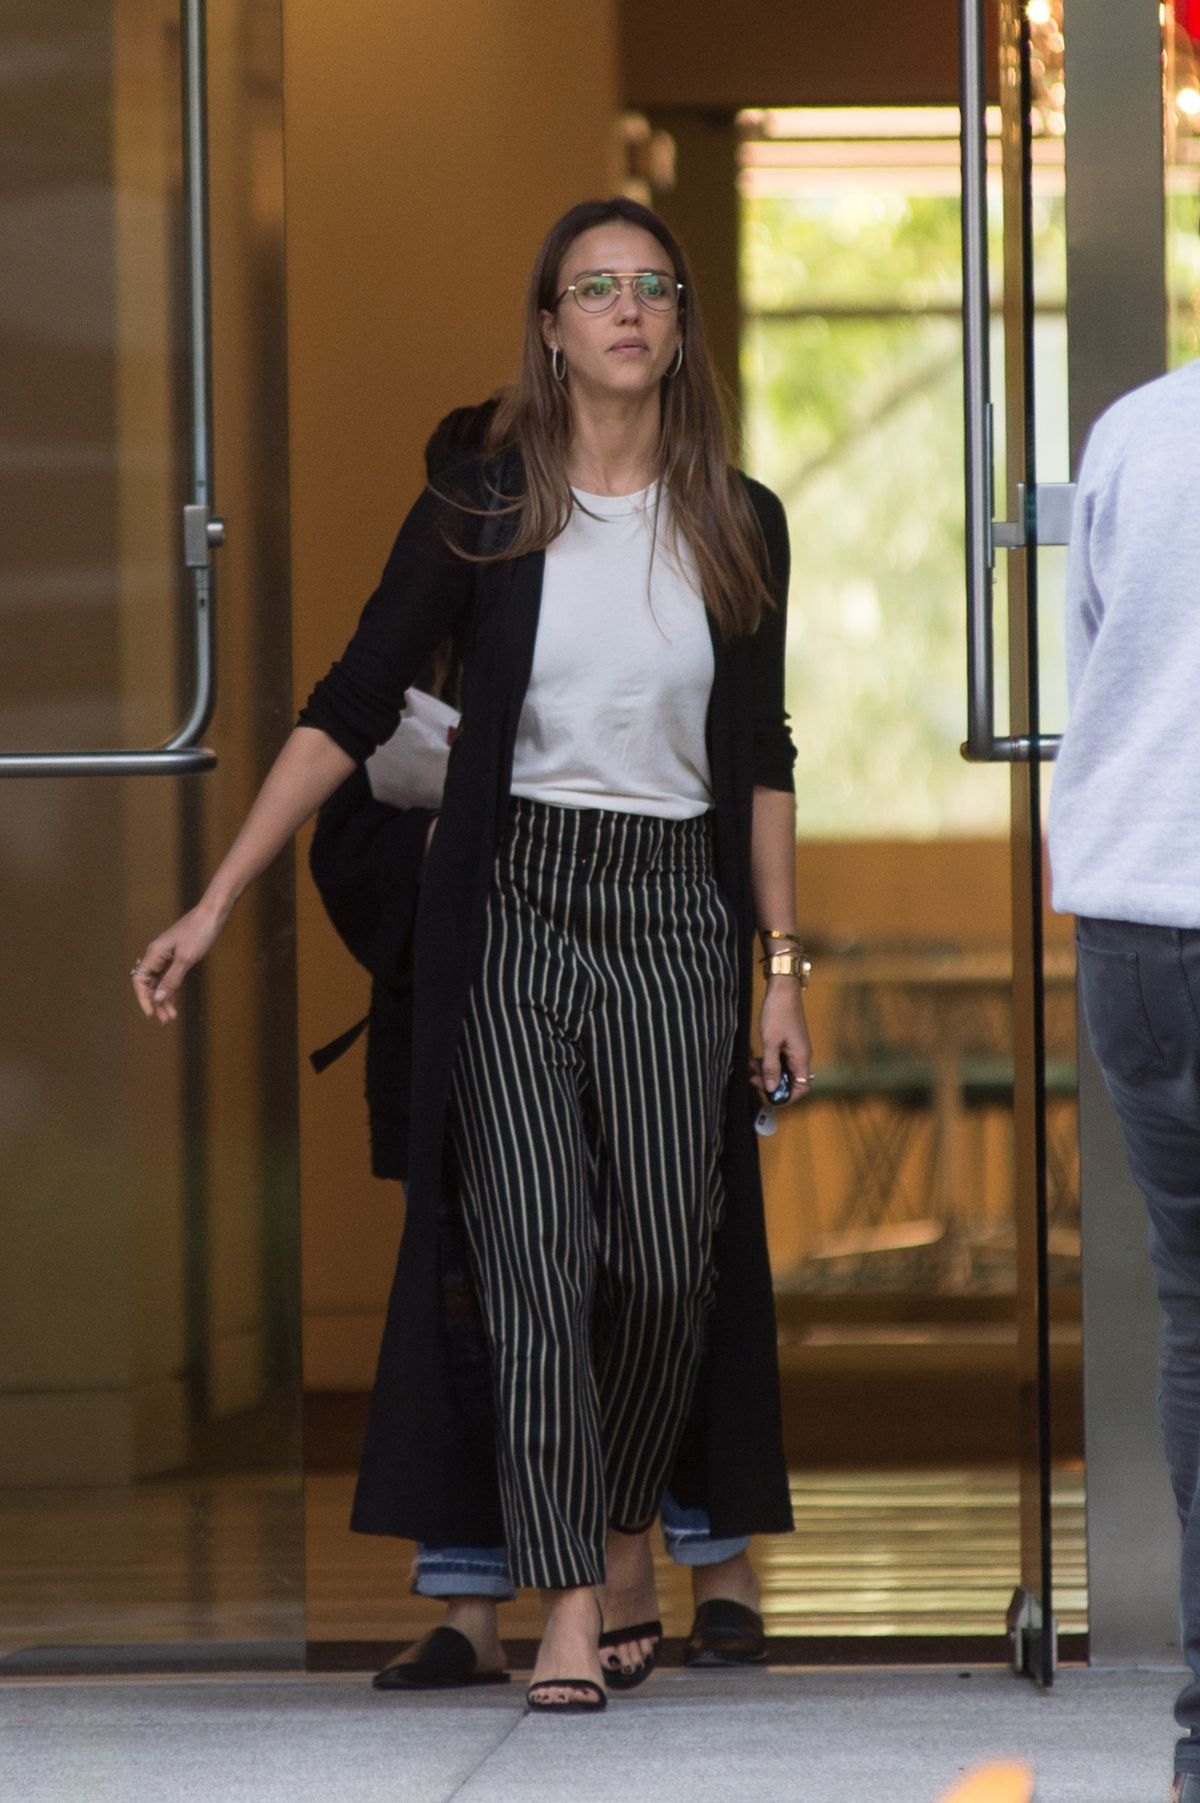 http://www.hawtcelebs.com/wp-content/uploads/2017/04/jessica-alba-leaves-an-office-in-los-angeles-04-15-2017_2.jpg